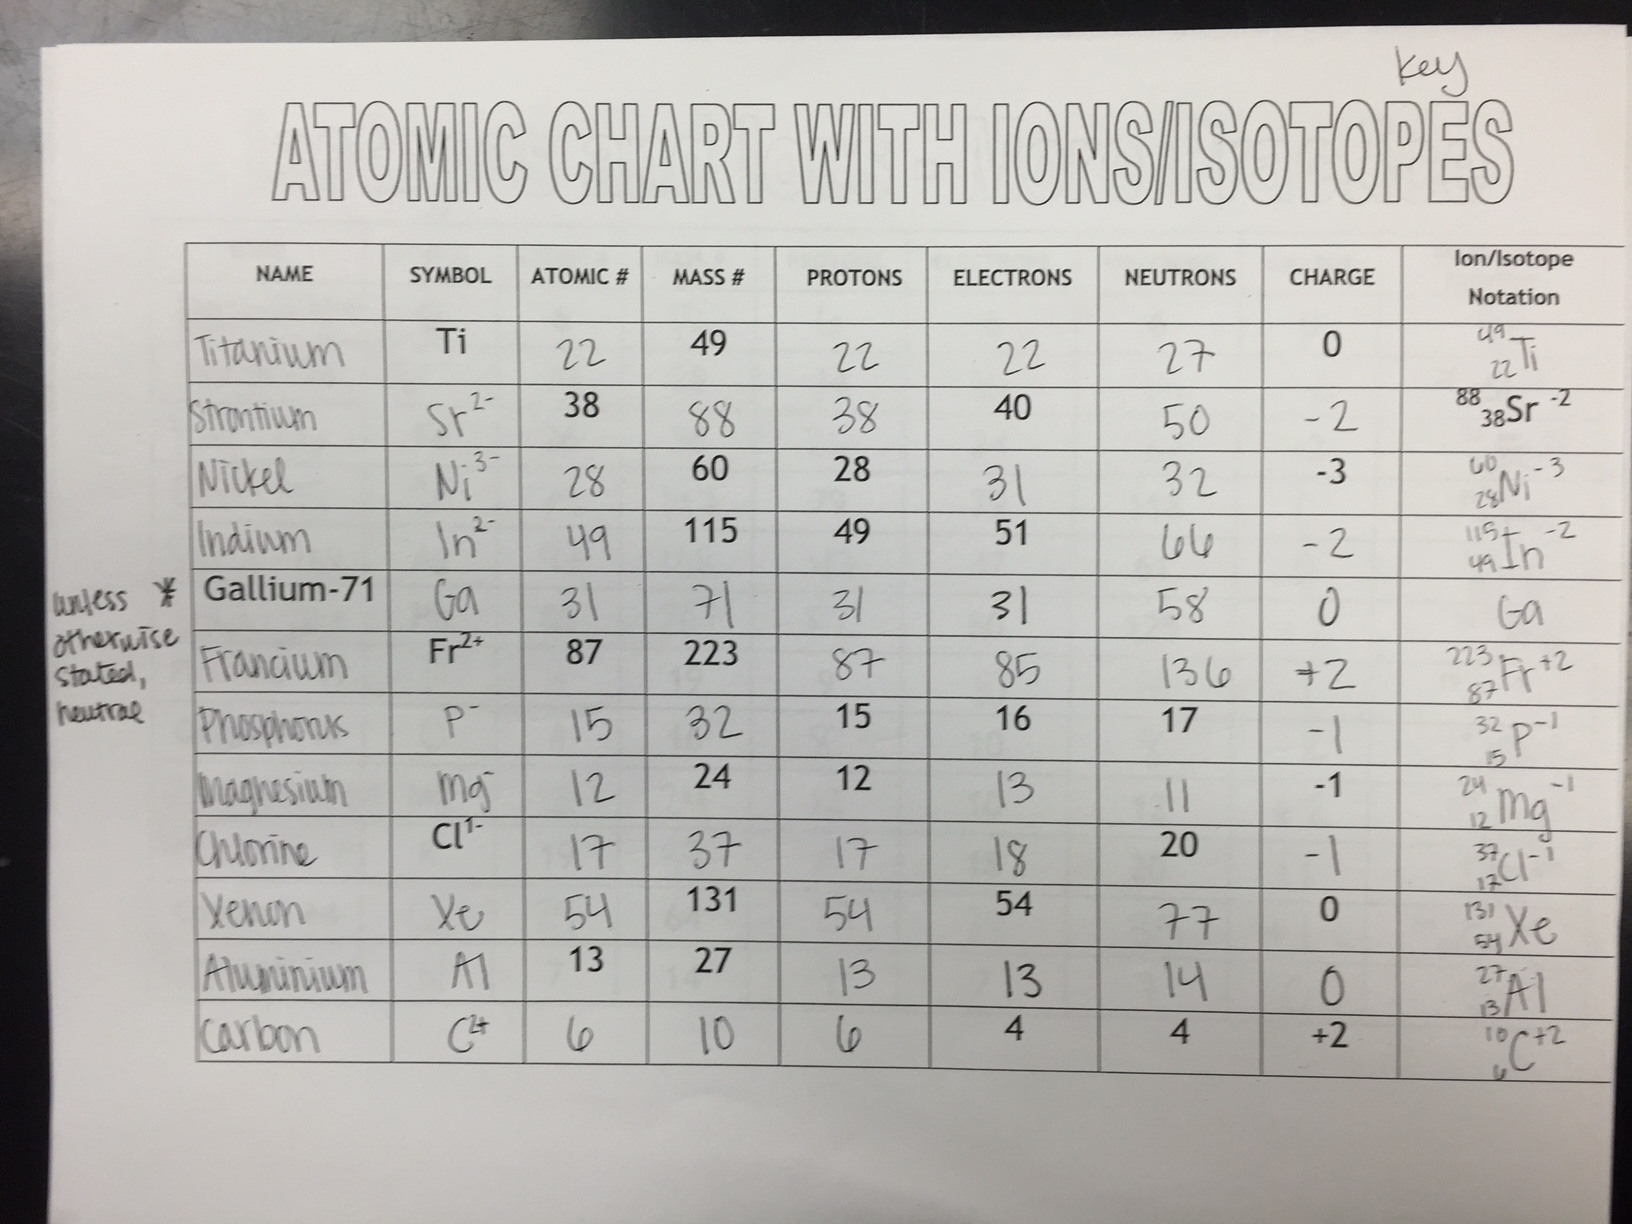 Atoms Ions And Isotopes Worksheet Answers Third Grade Math